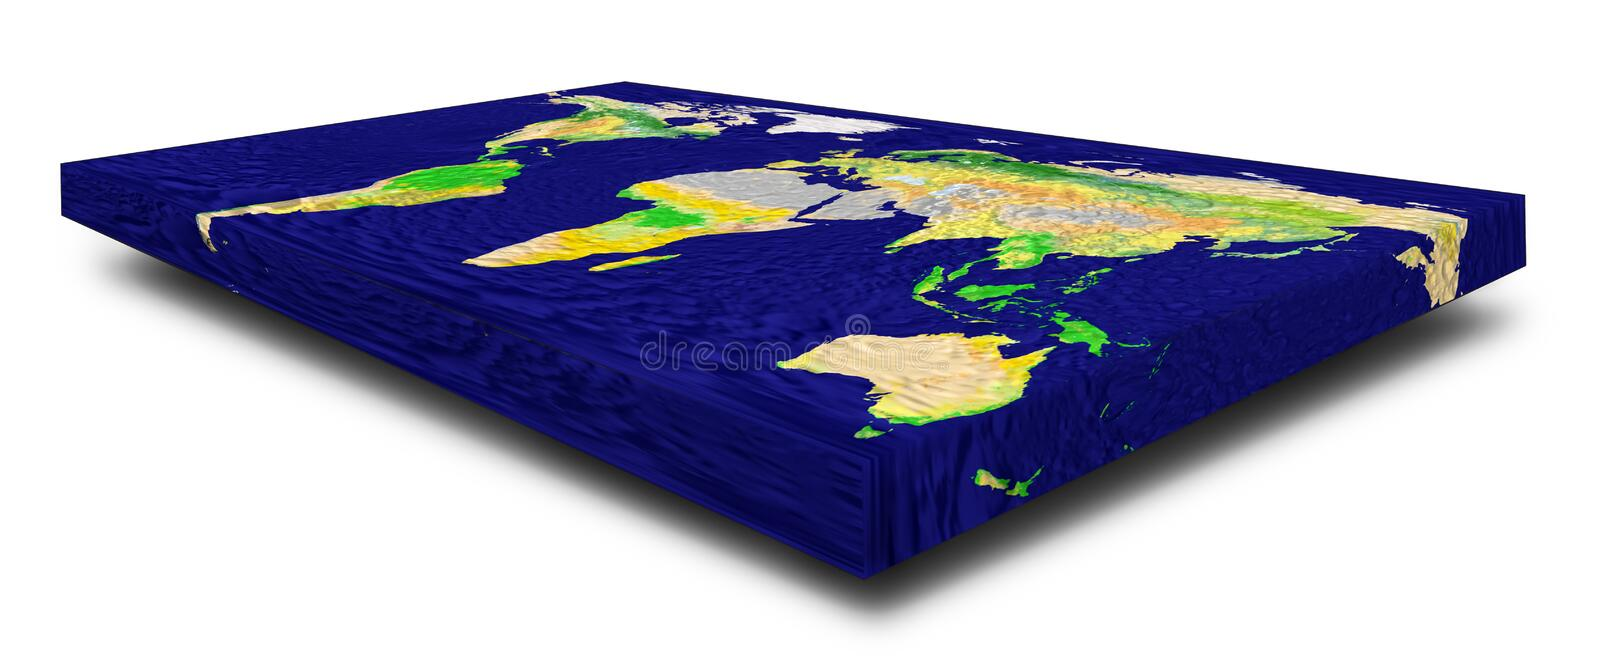 Representation of a rectangular flat Earth model on white background with shadow. Angle view with perspective 3d render. Elements vector illustration